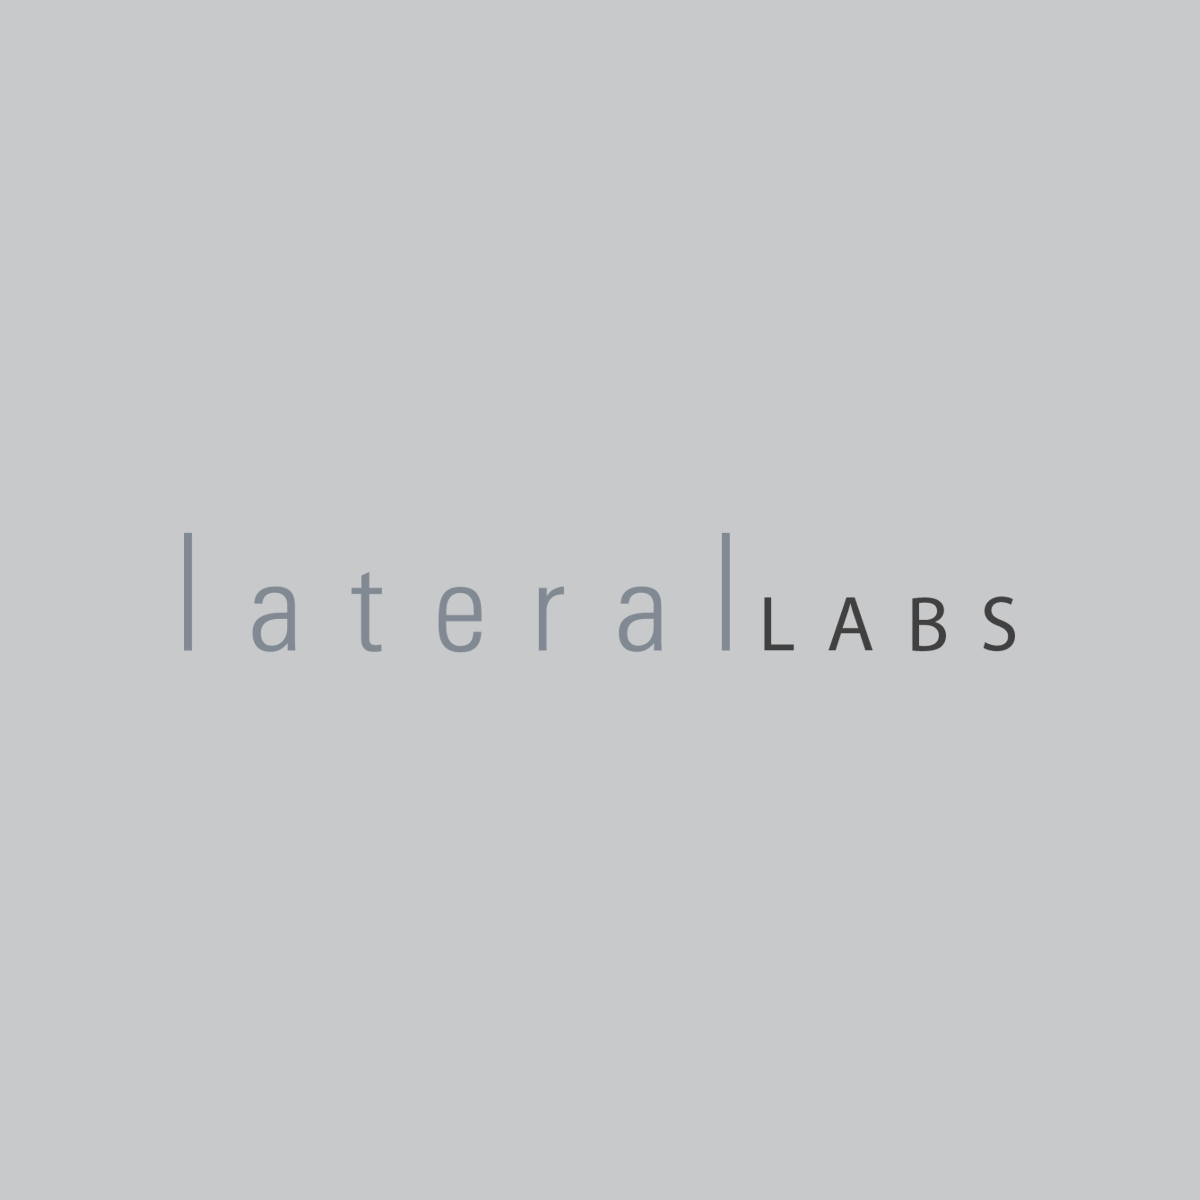 laterallabs.png